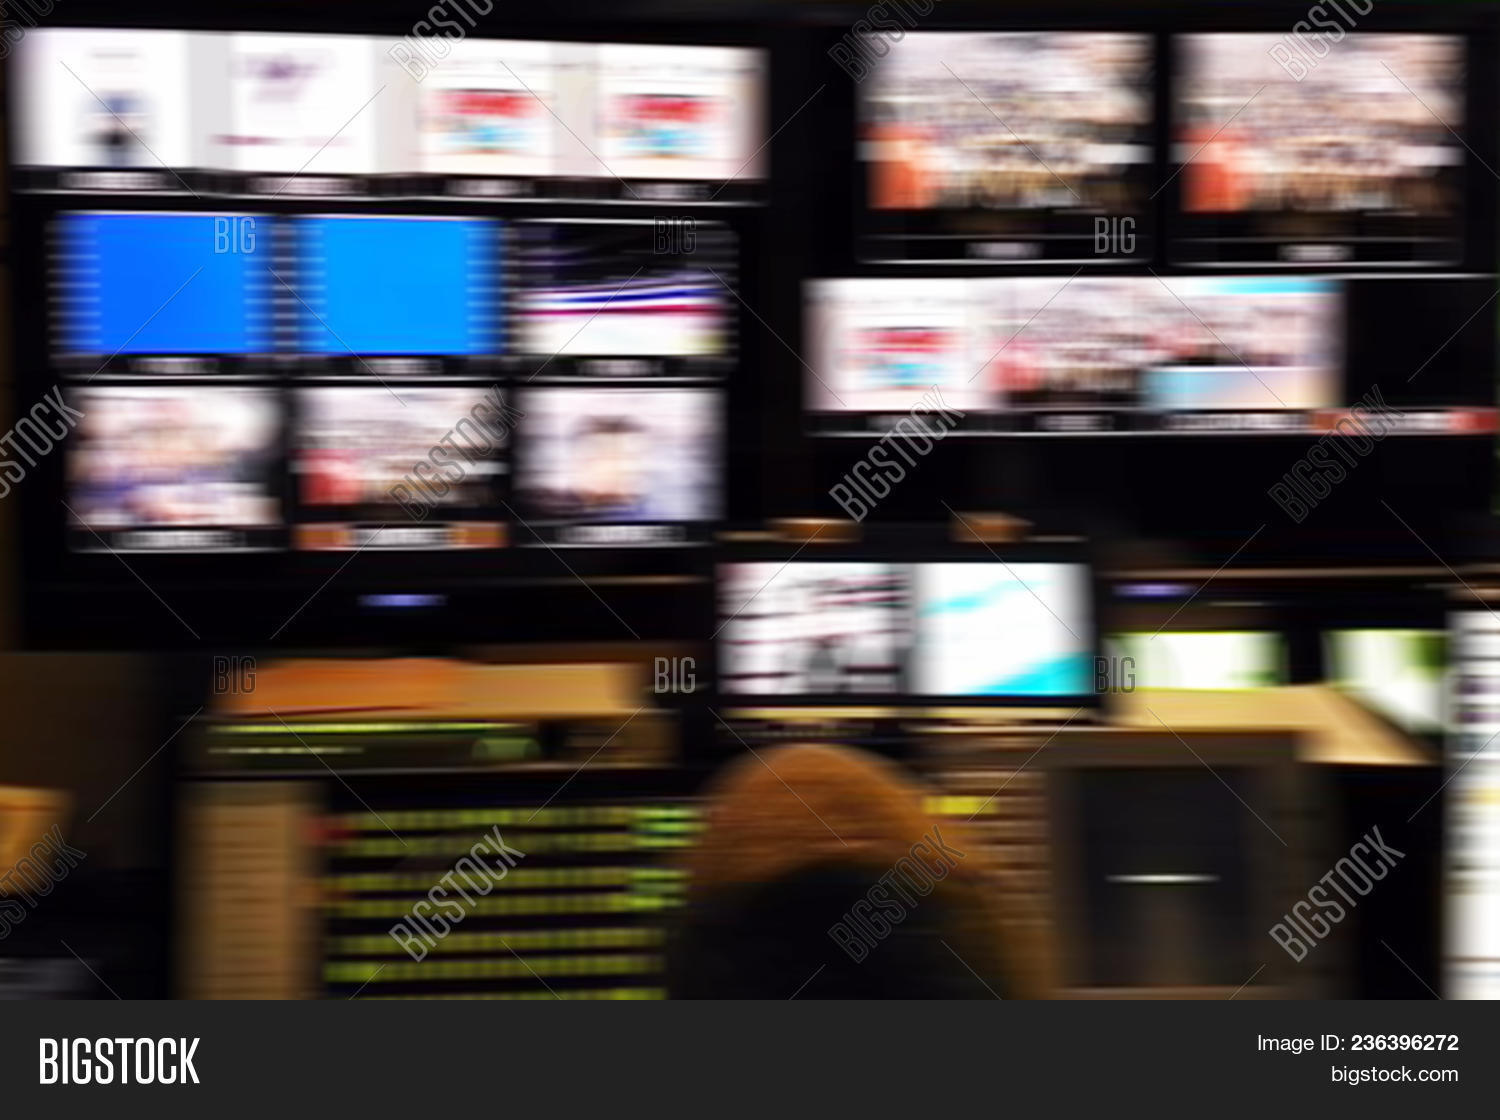 🔥 Blur Image Video Switch Of Television Broadcast, Working With